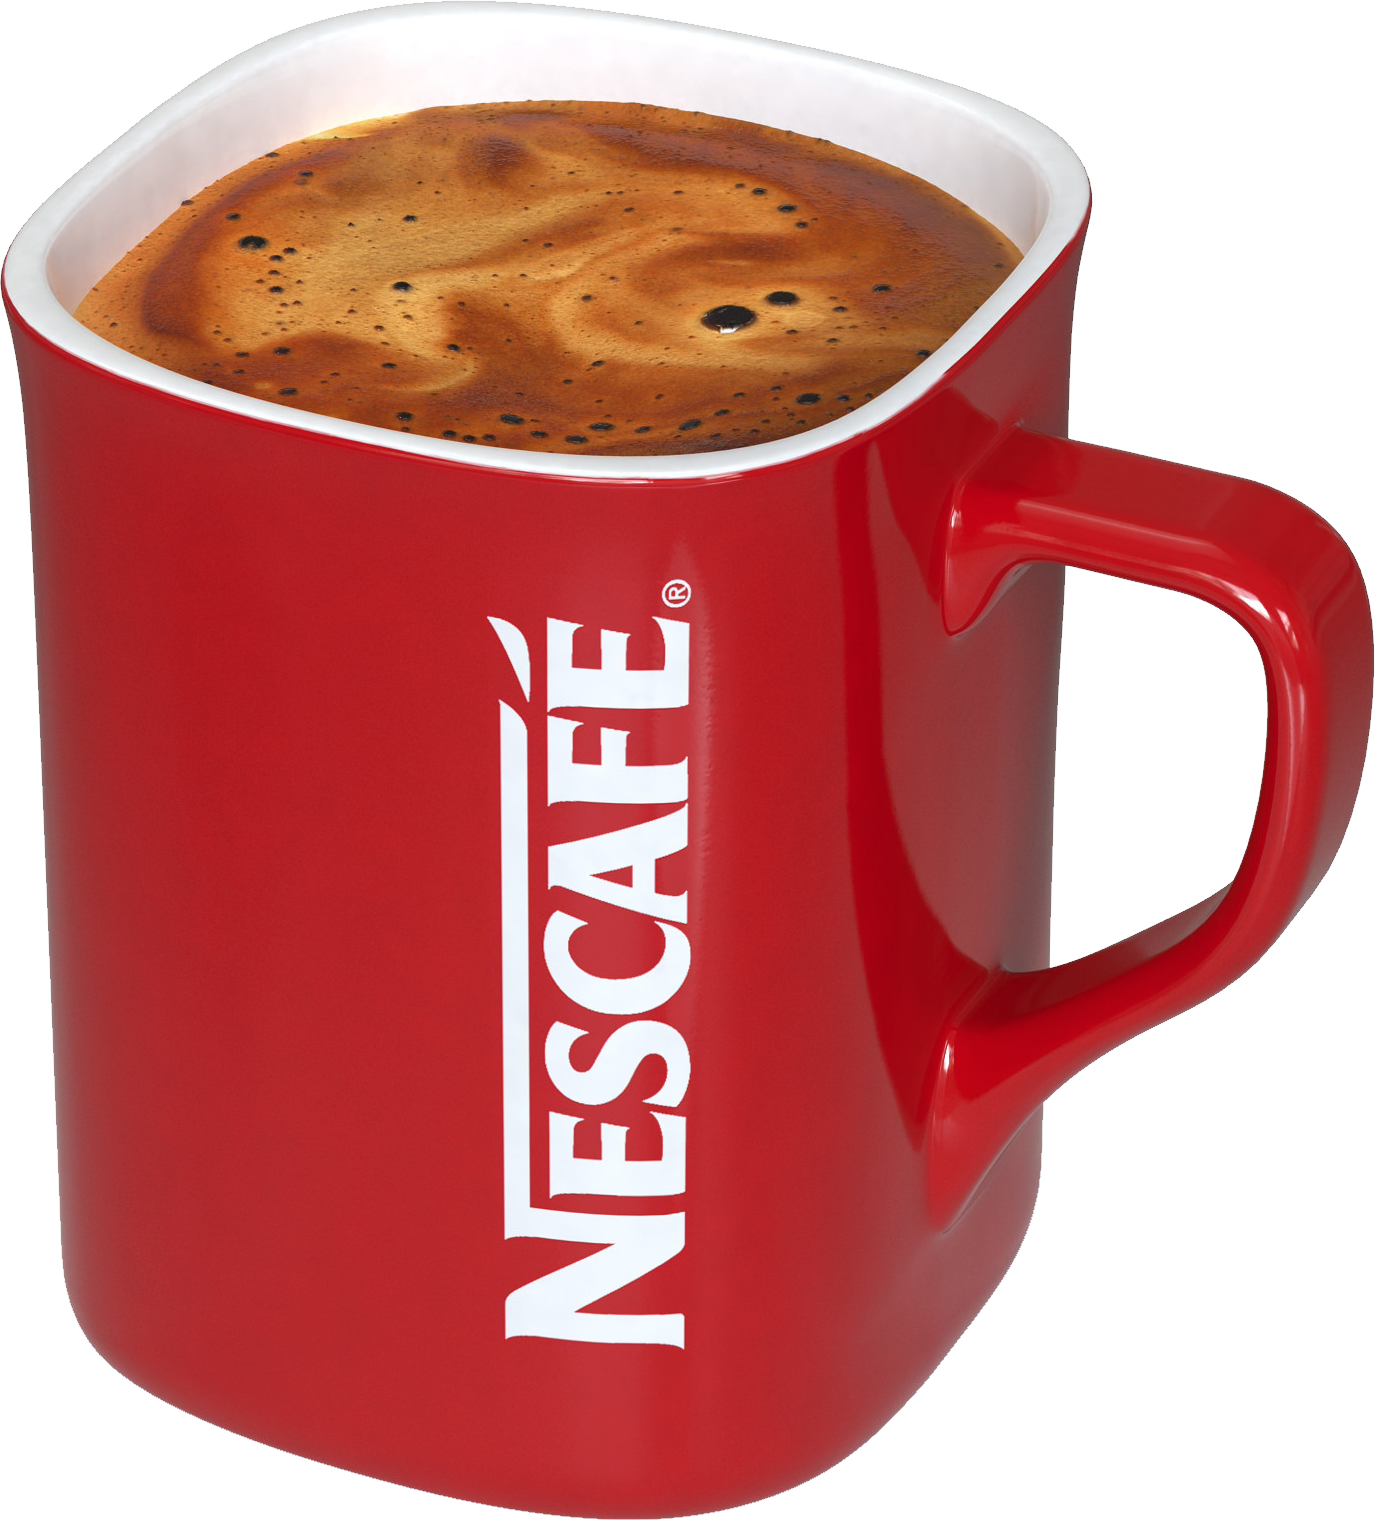 Red cups png. Cup mug coffee images